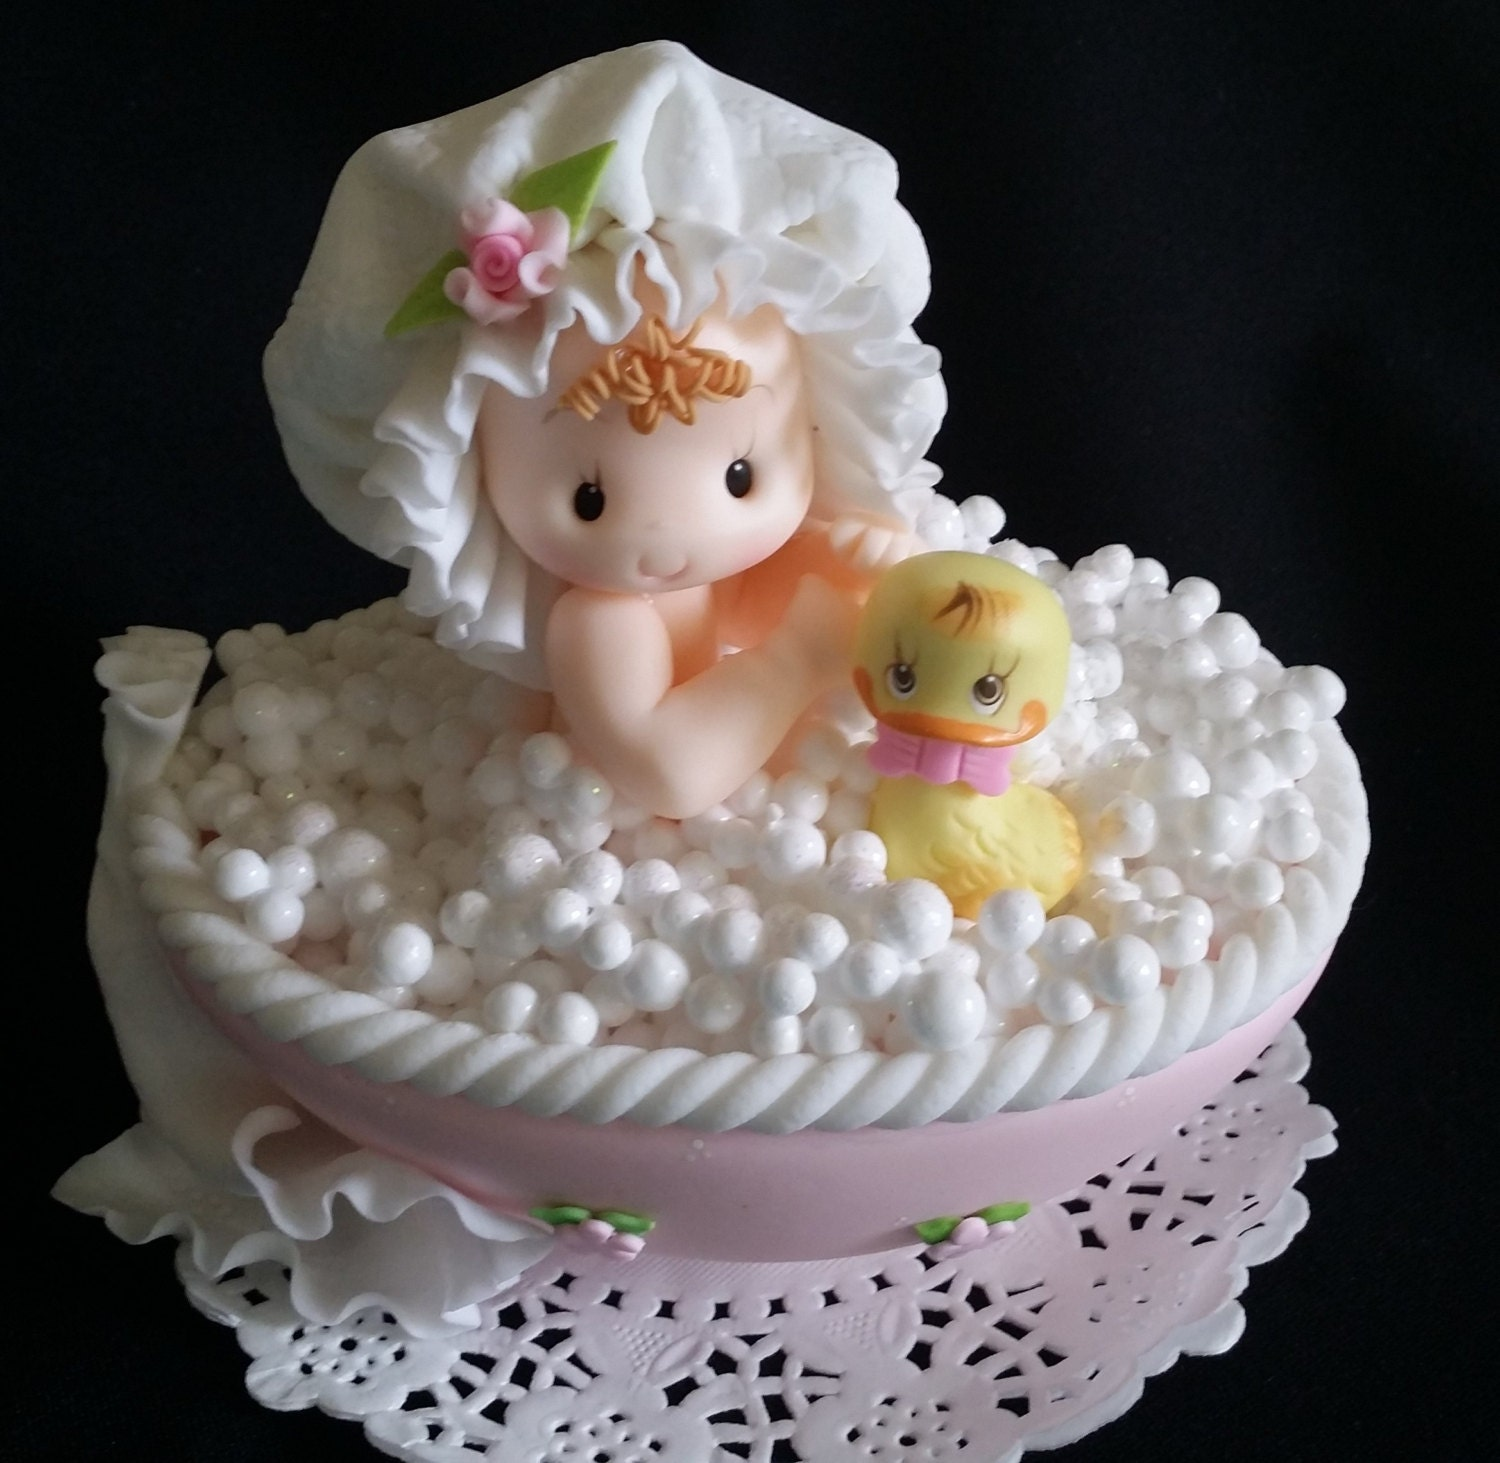 Twin Baby Shower Cake Toppers: Baby Shower Cake Topper, Baby Shower Favor, Baby Cake